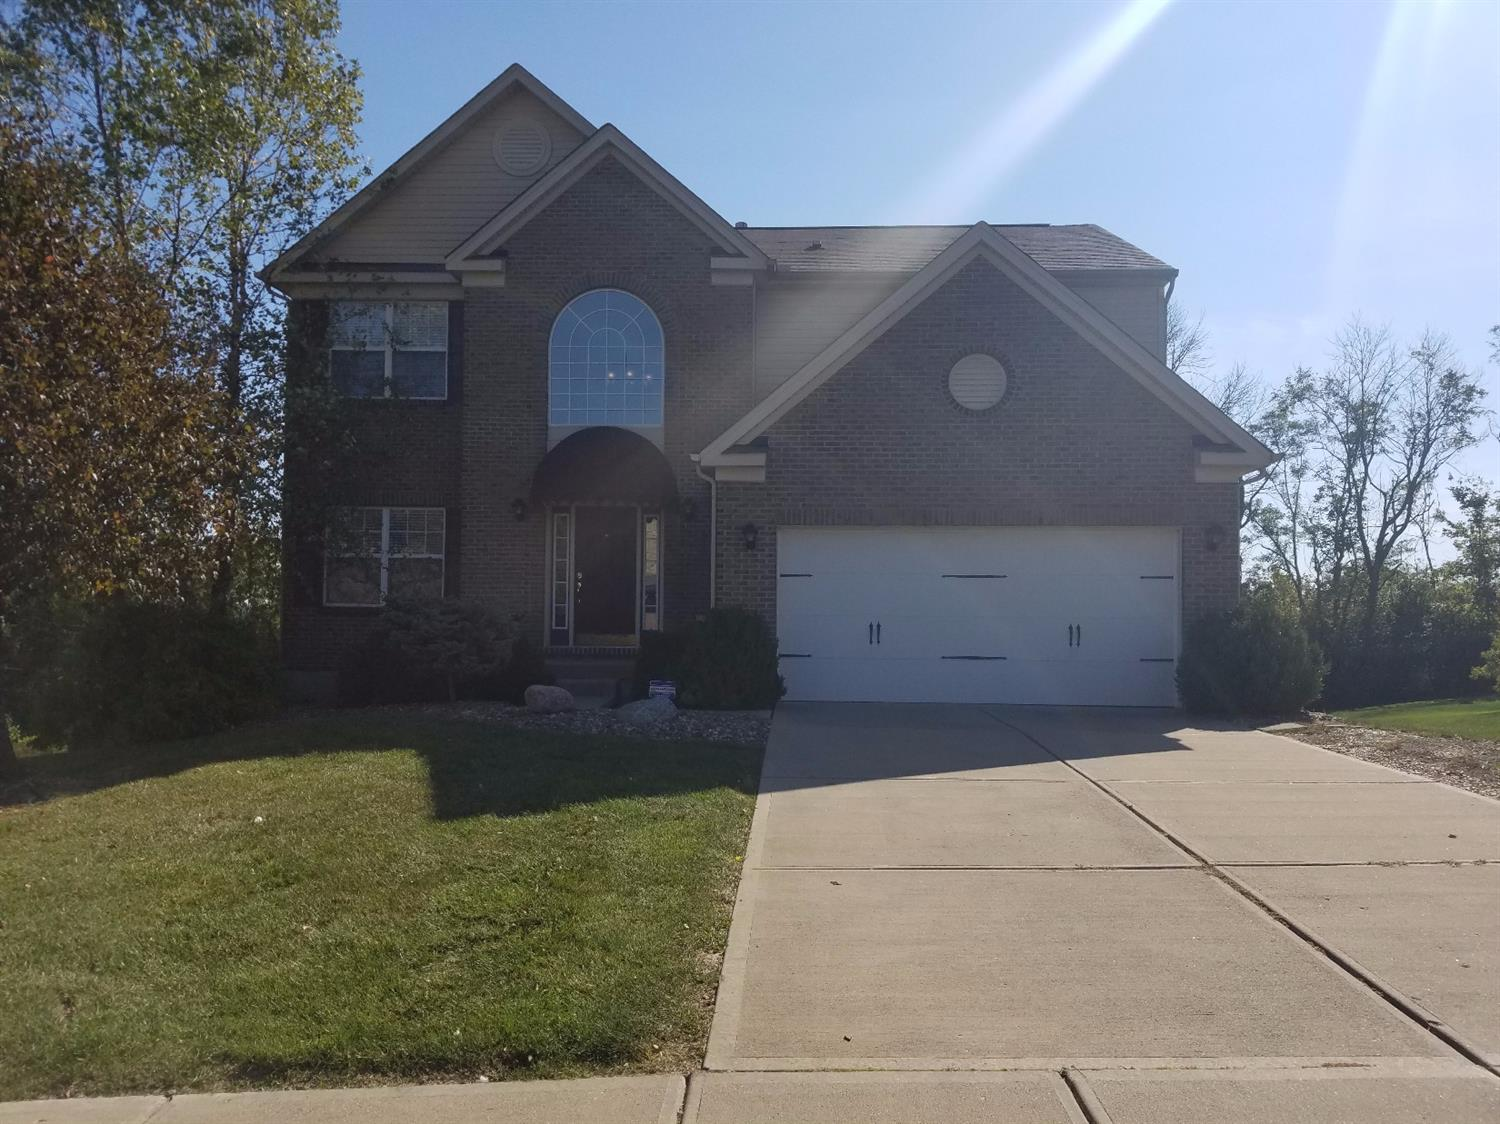 Photo 1 for 9855 Codyview Dr Independence, KY 41051